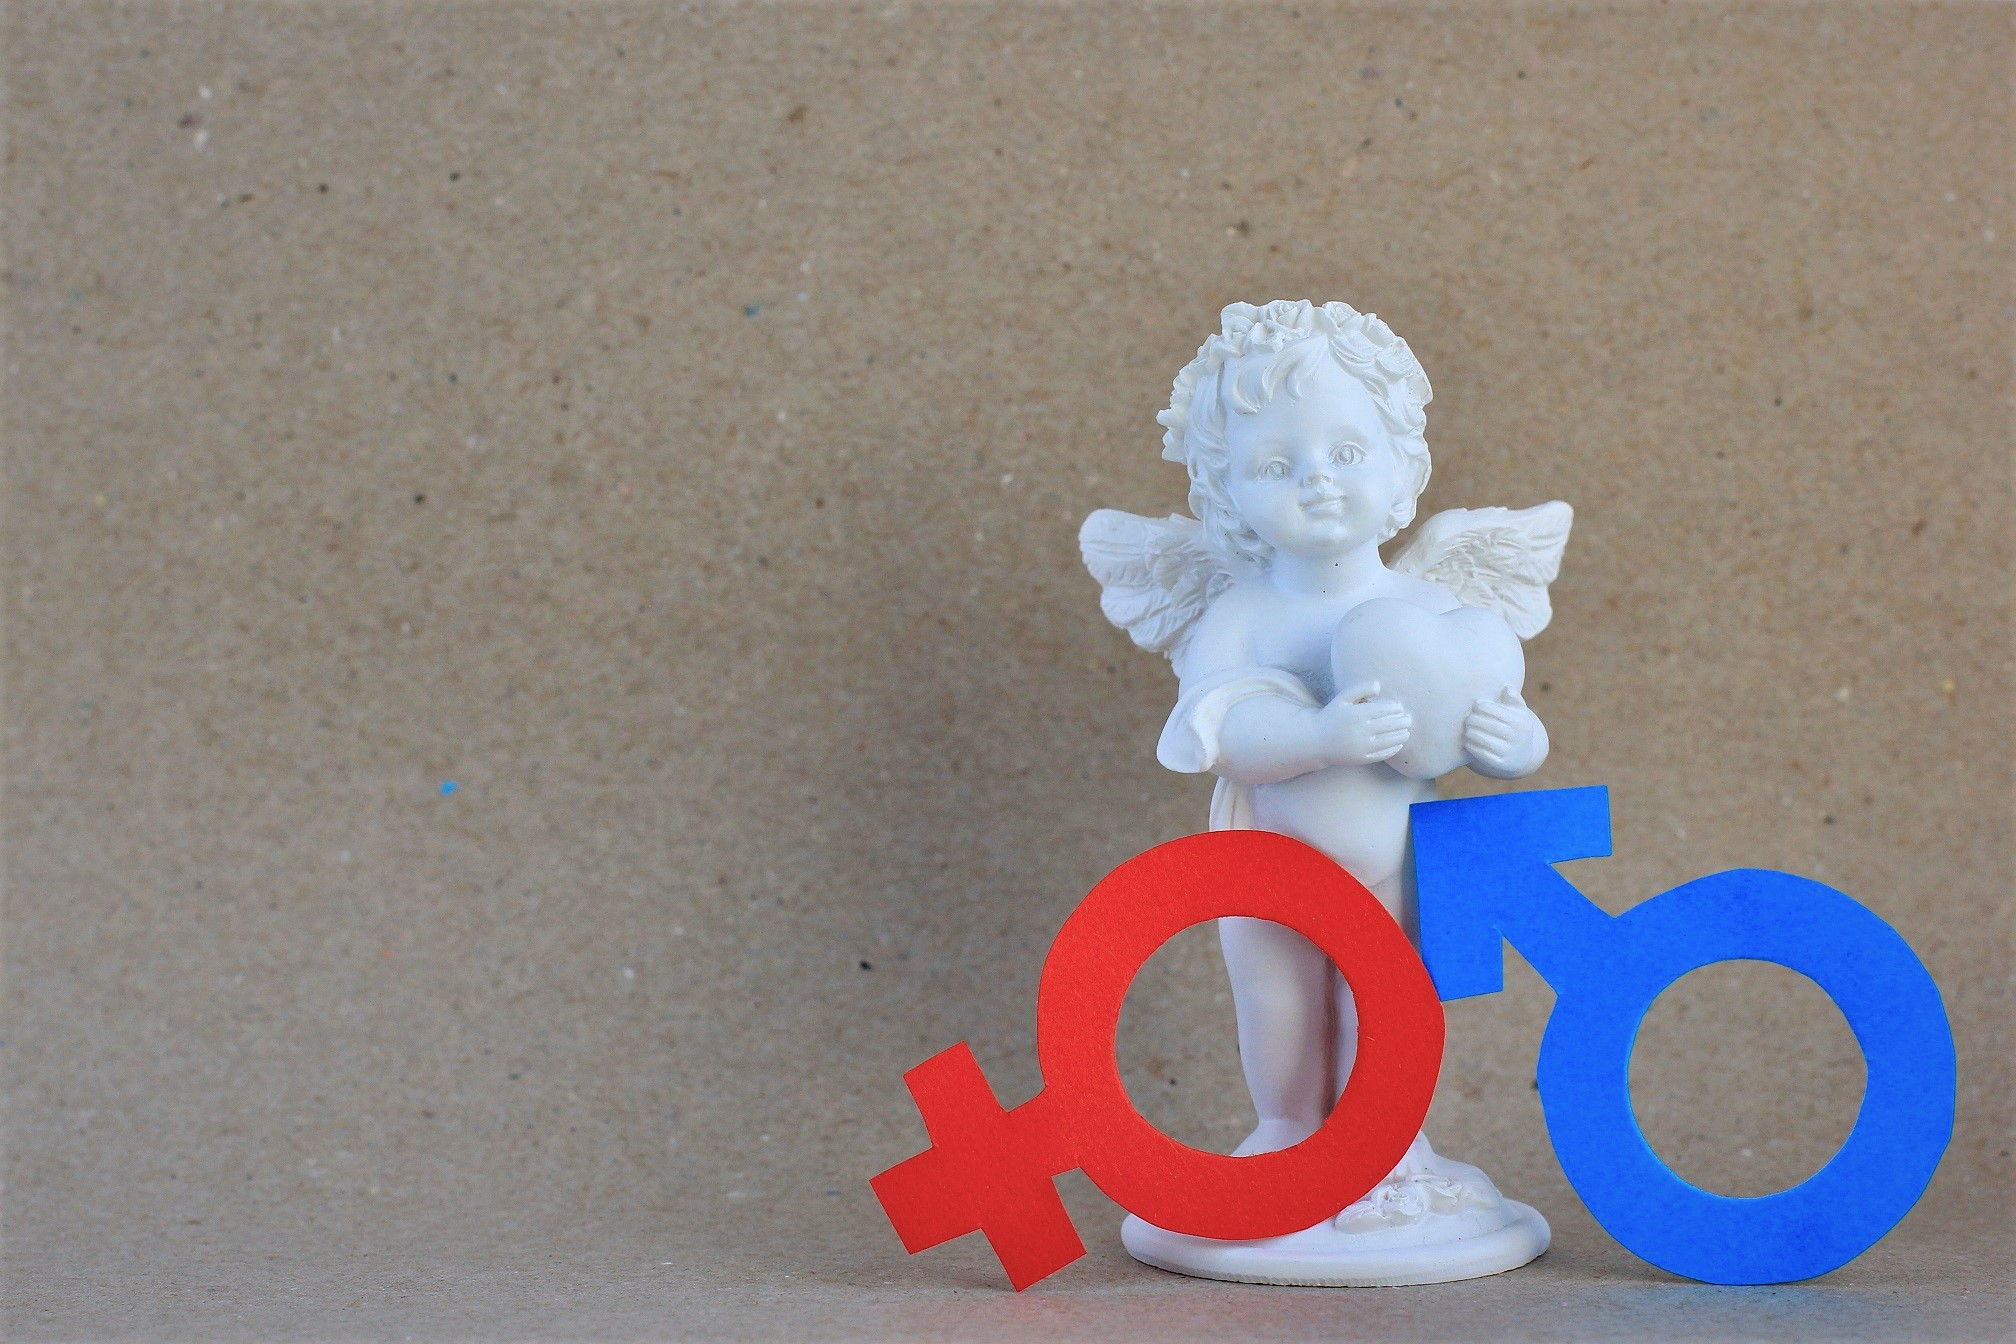 figurine of angel with red female and blue male pa YFC4T7H Другая SOVA featured, половое воспитание, ранние браки